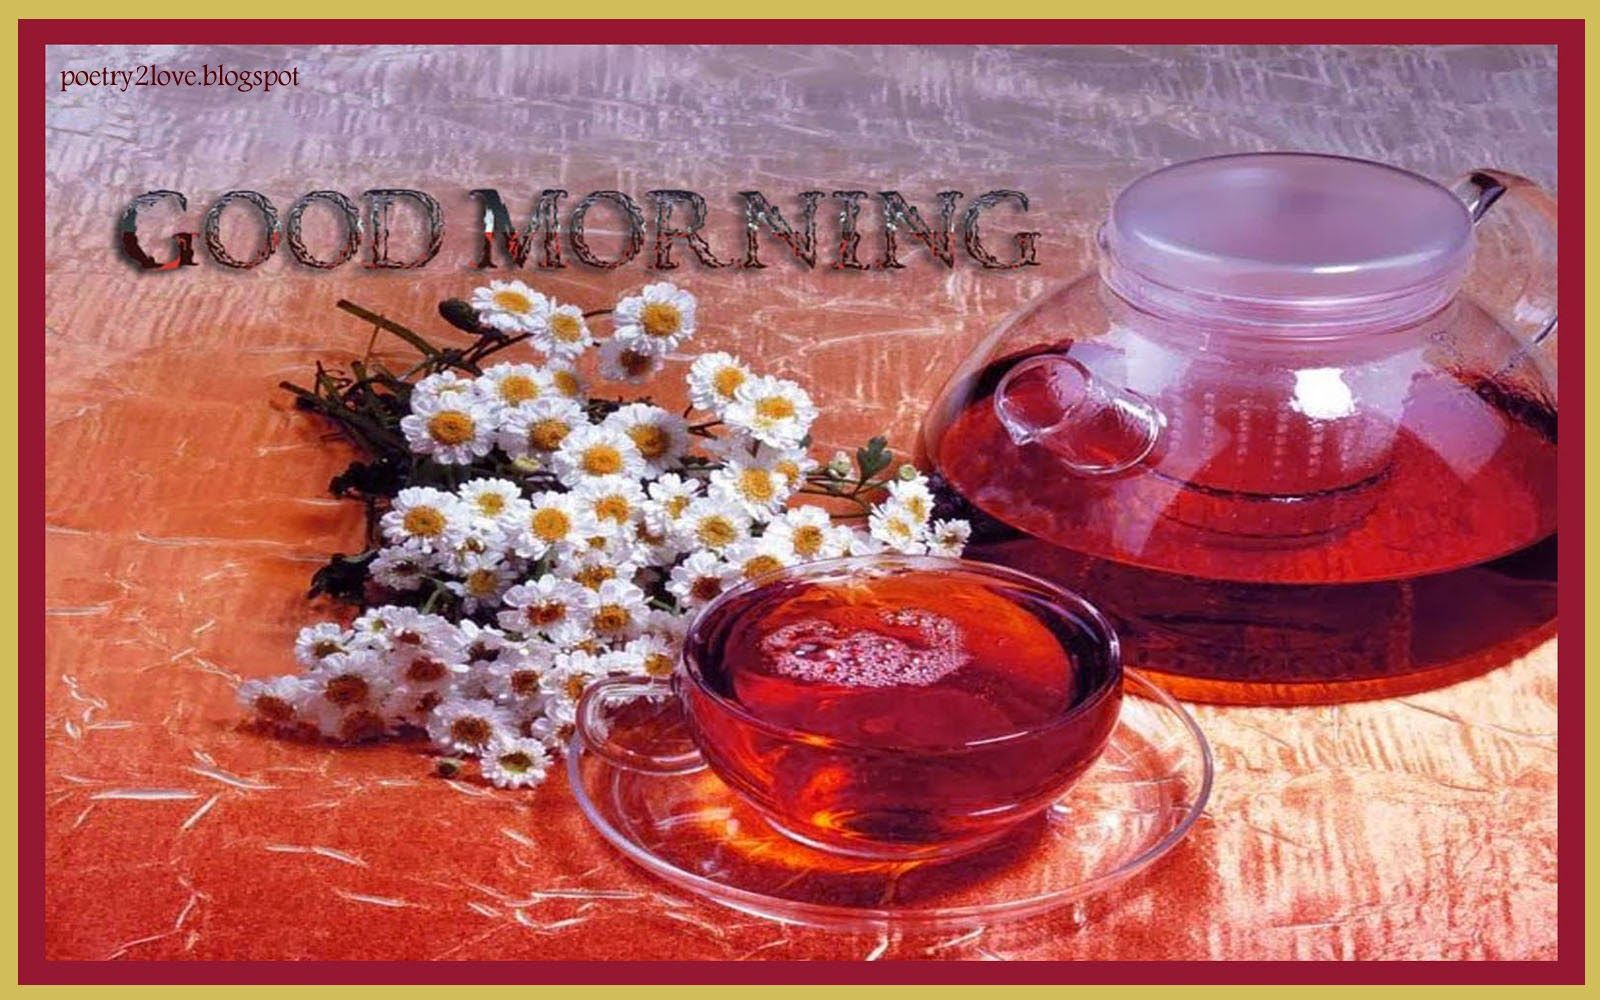 Good Morning Urdu Romantic And Lovely Sms Hd Wallpapers Free Download Poetry Sms Tea Wallpaper Good Morning Beautiful Flower Tea